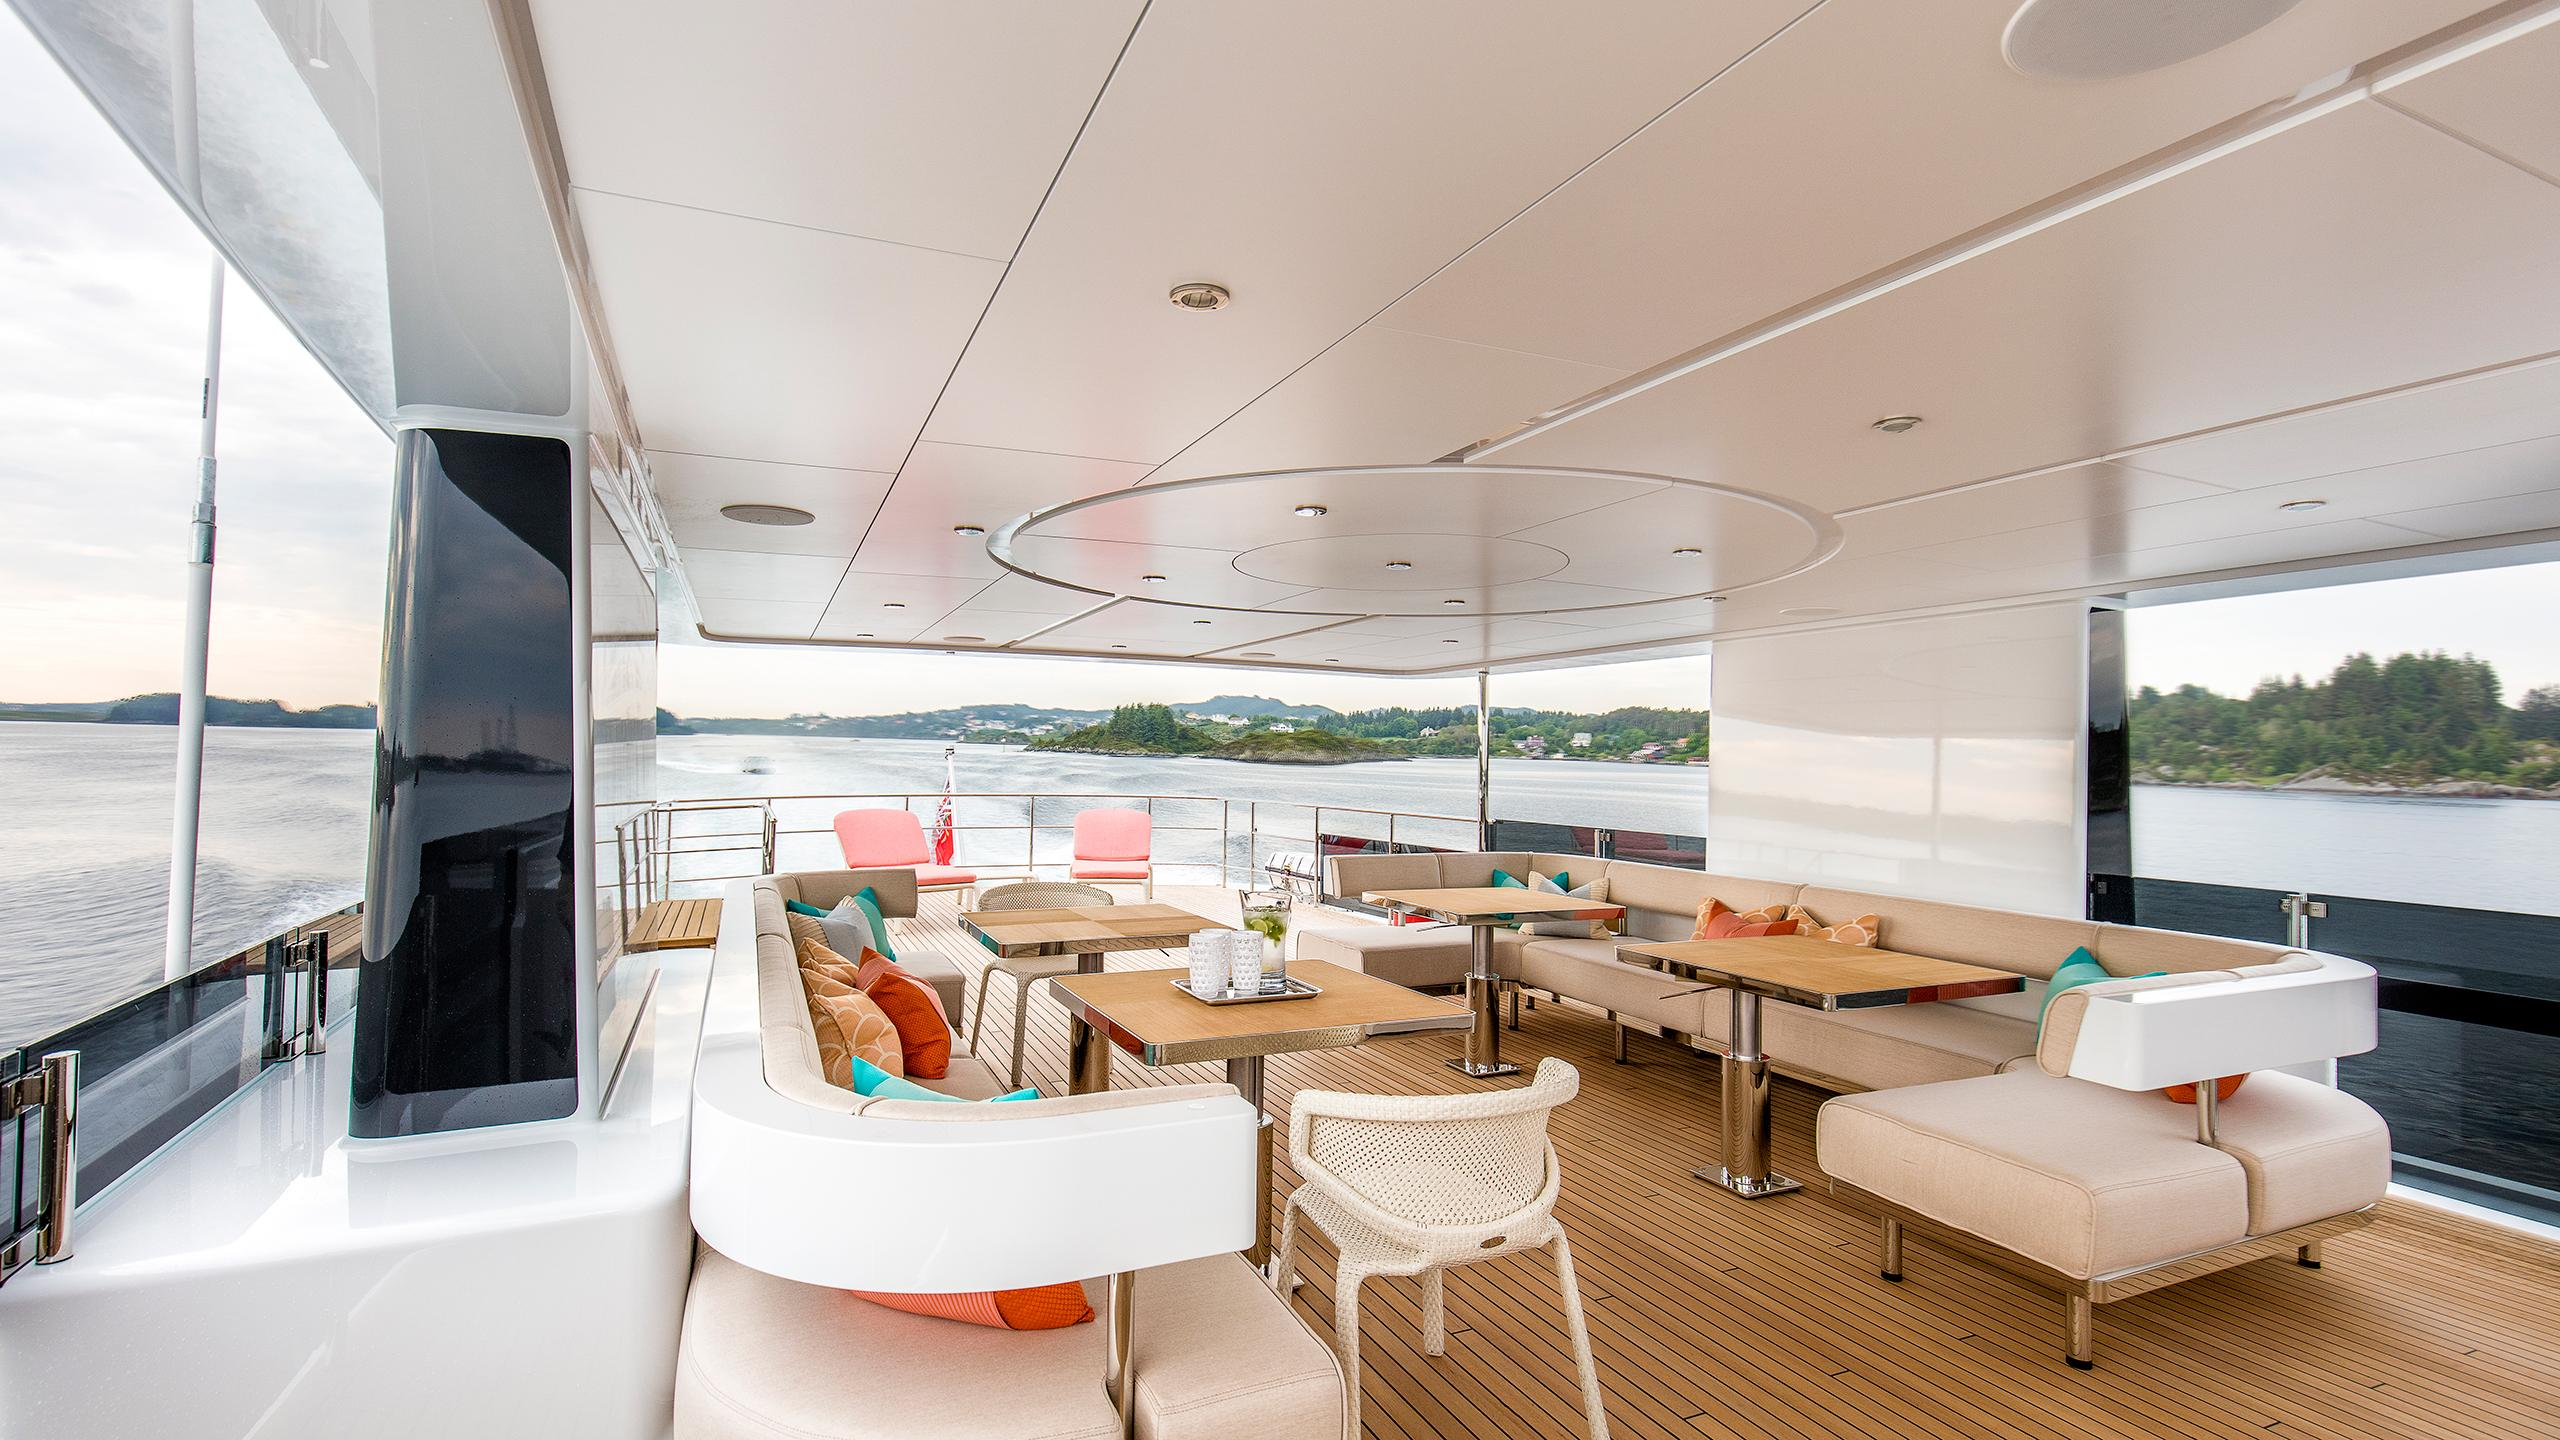 moon-sand-too-super-yacht-feadship-2016-34-metre-upper deck